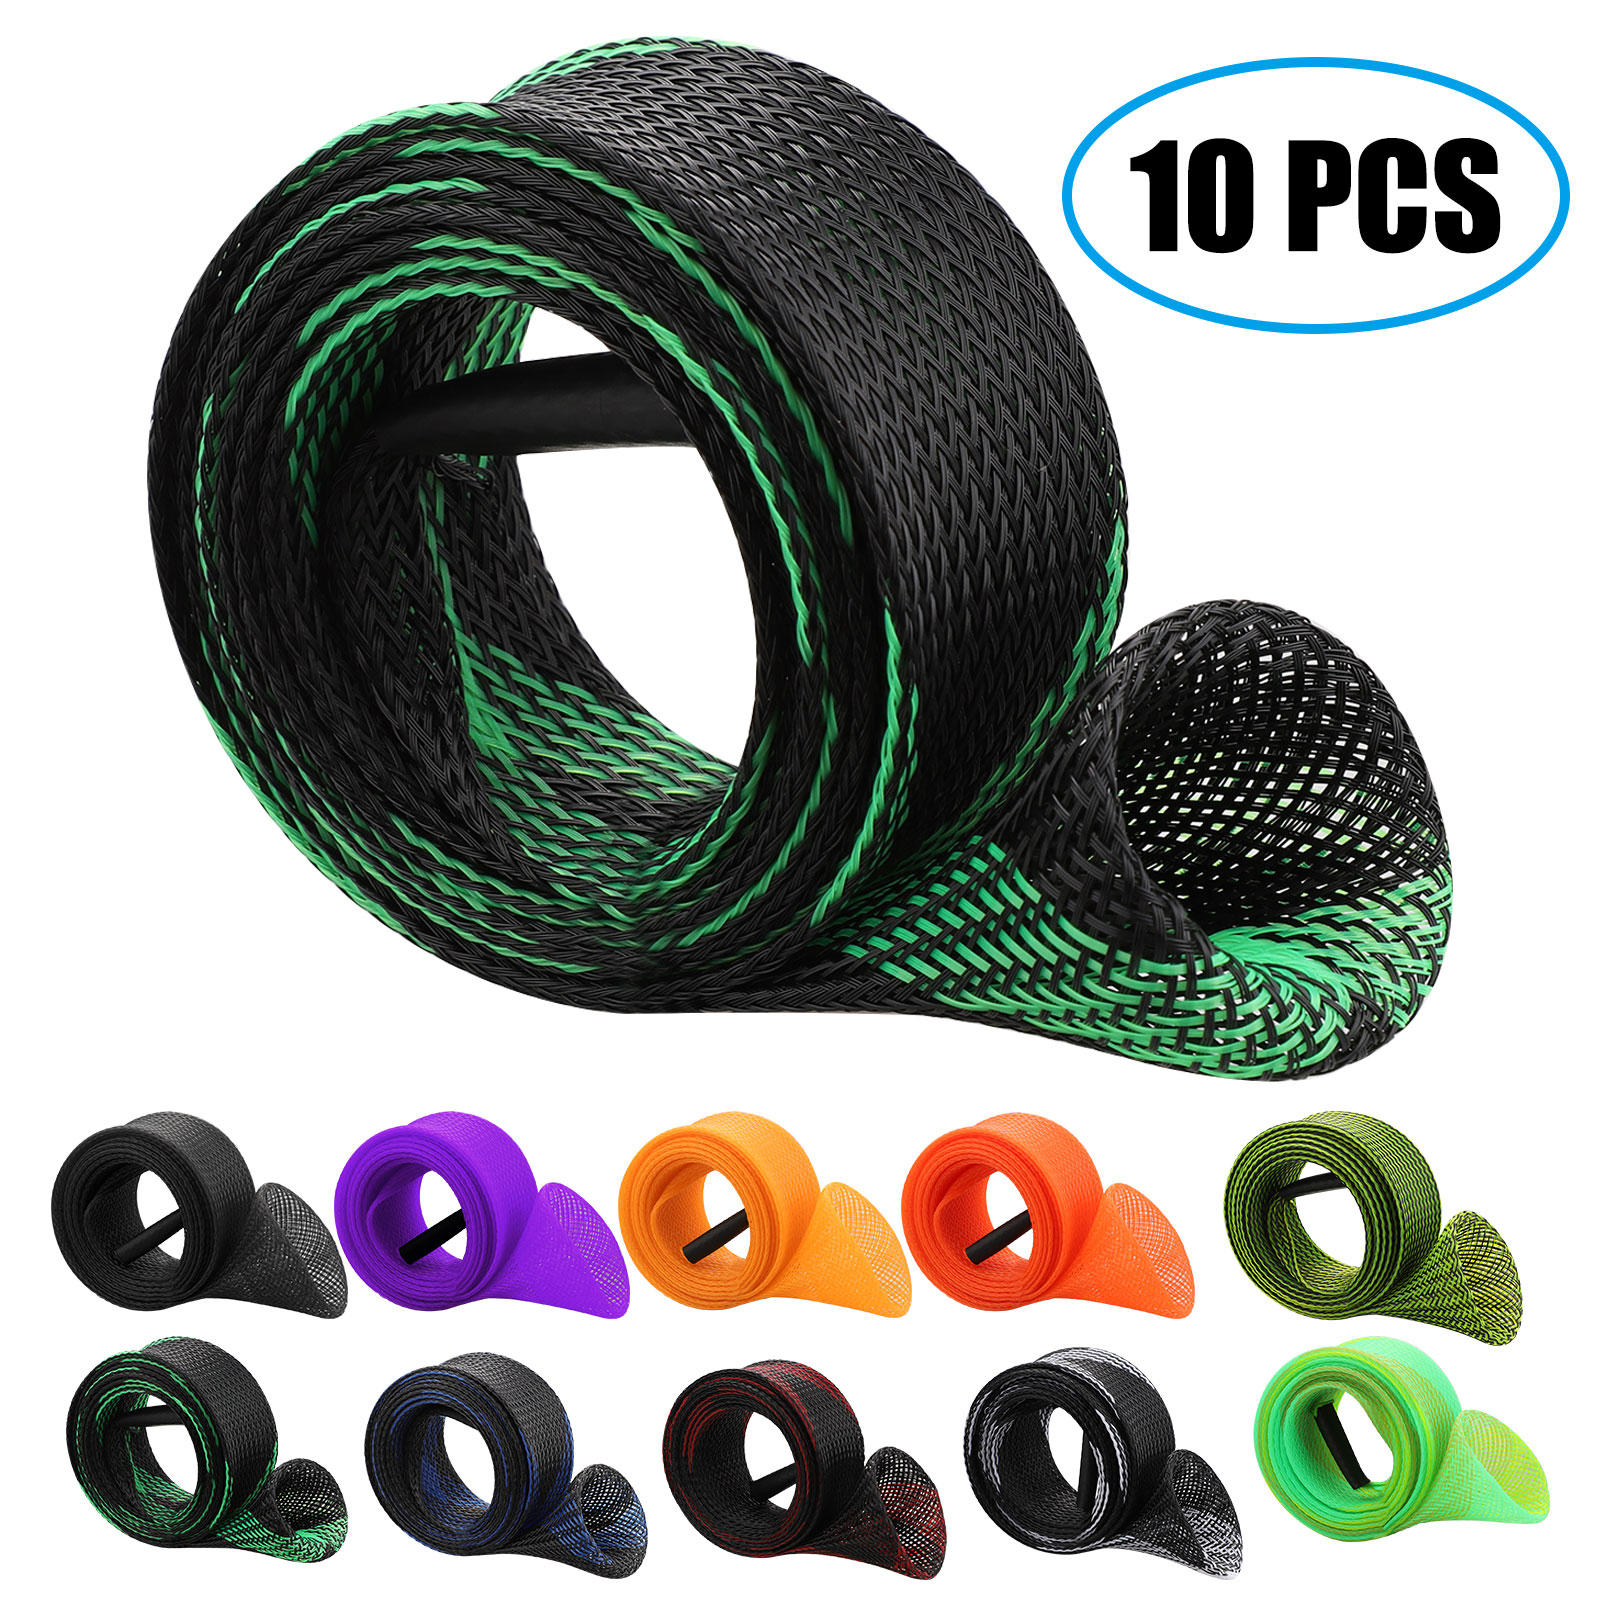 10Pcs-67-039-039-Fishing-Spinning-Rod-Sock-Covers-Braided-Mesh-Rod-Protector-Sleeve-US